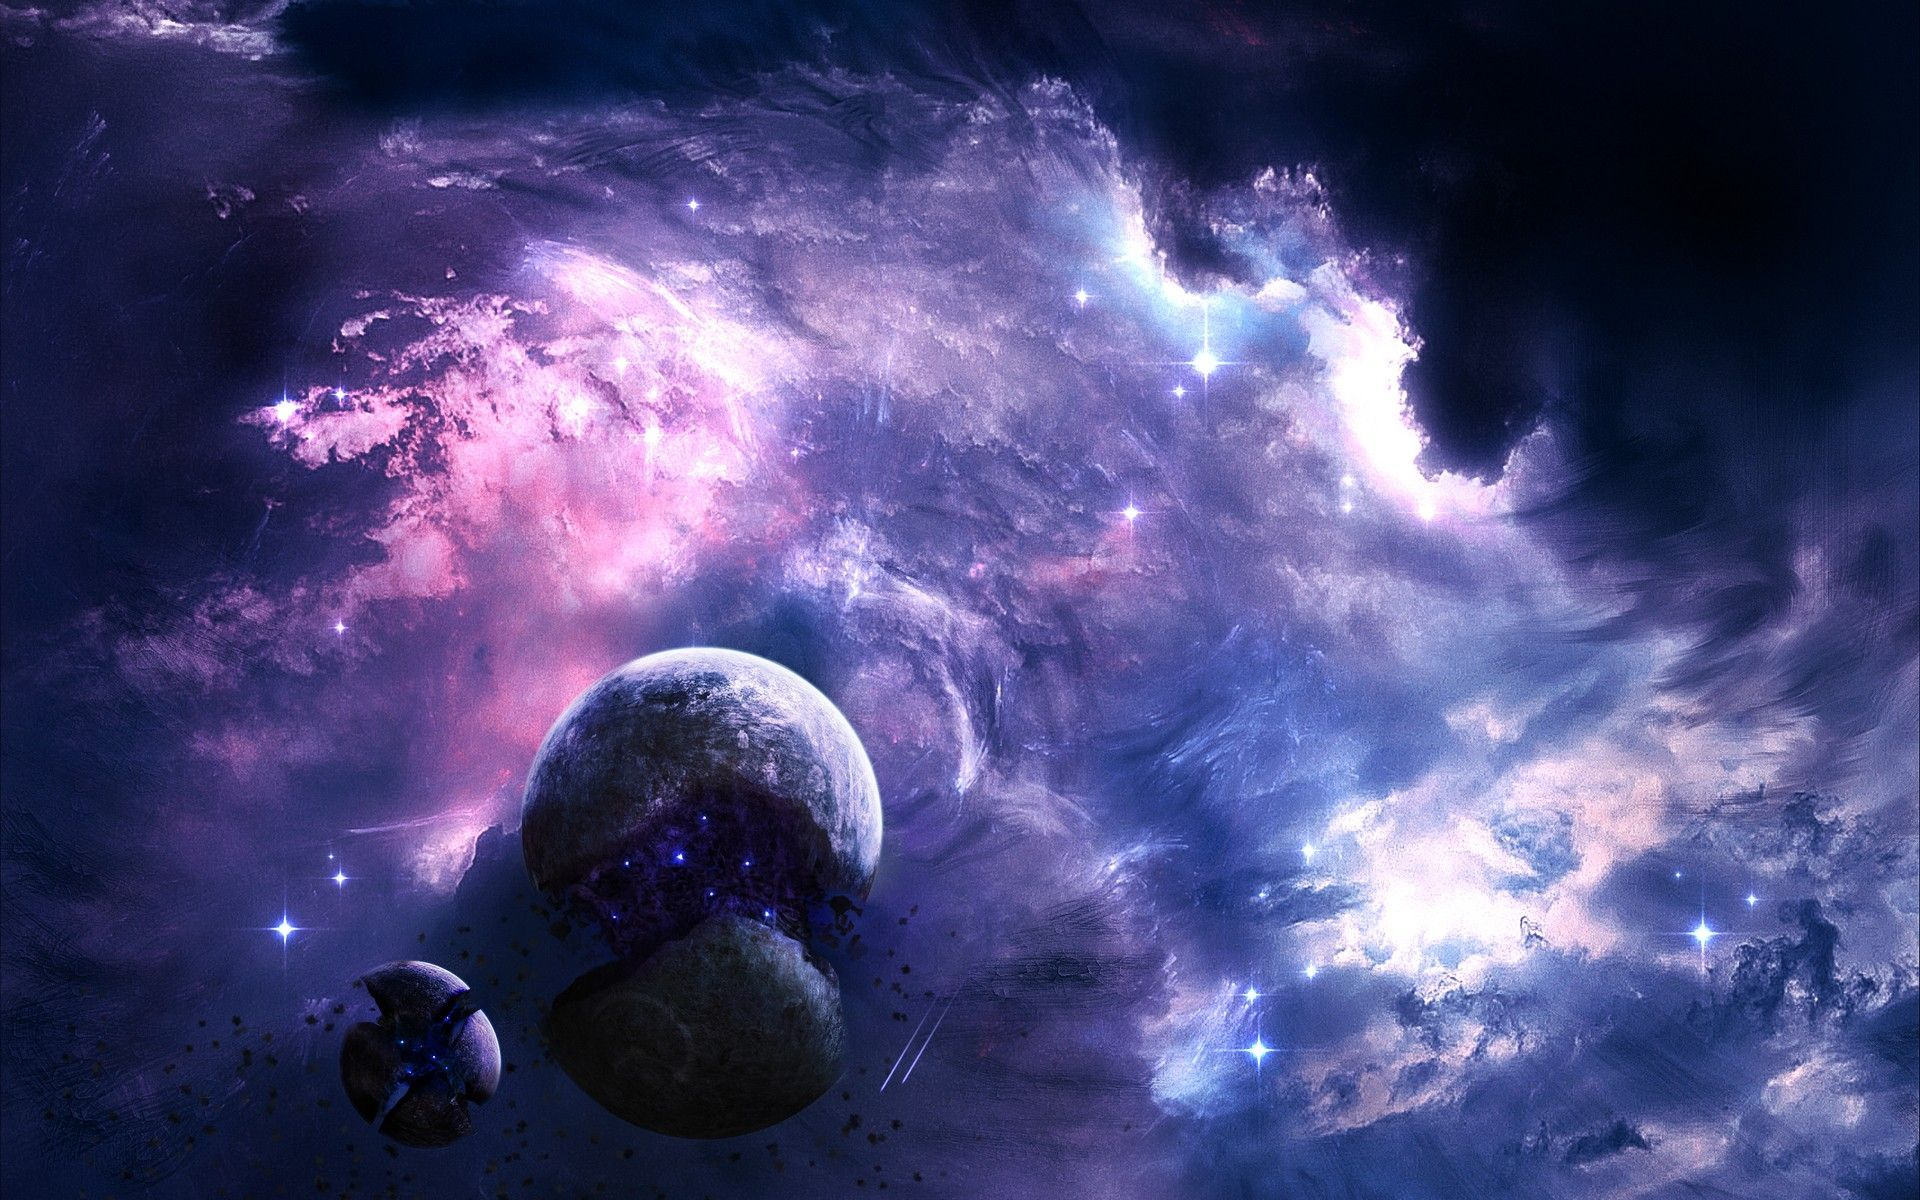 Outer Space Artwork Wallpapers All Kinds Of Creepy Pretty 2048x1152 Wallpapers Space Art Wallpaper Space Artwork